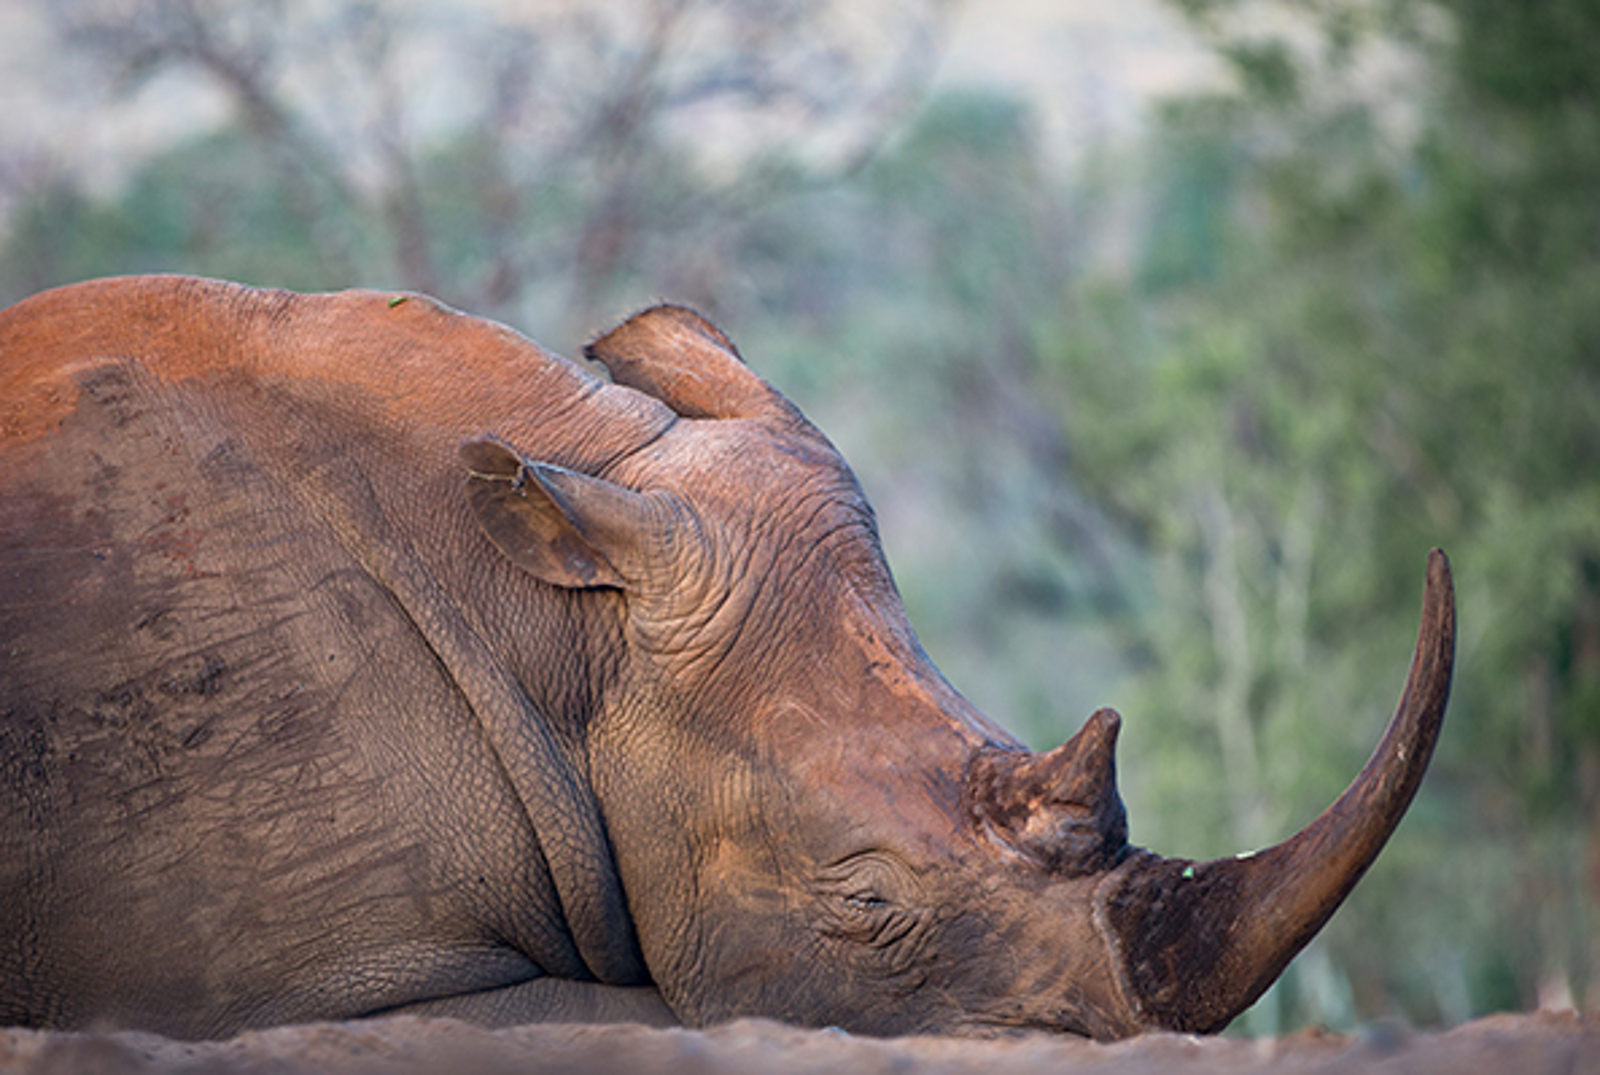 Using Photography to Come Face to Face With Poaching